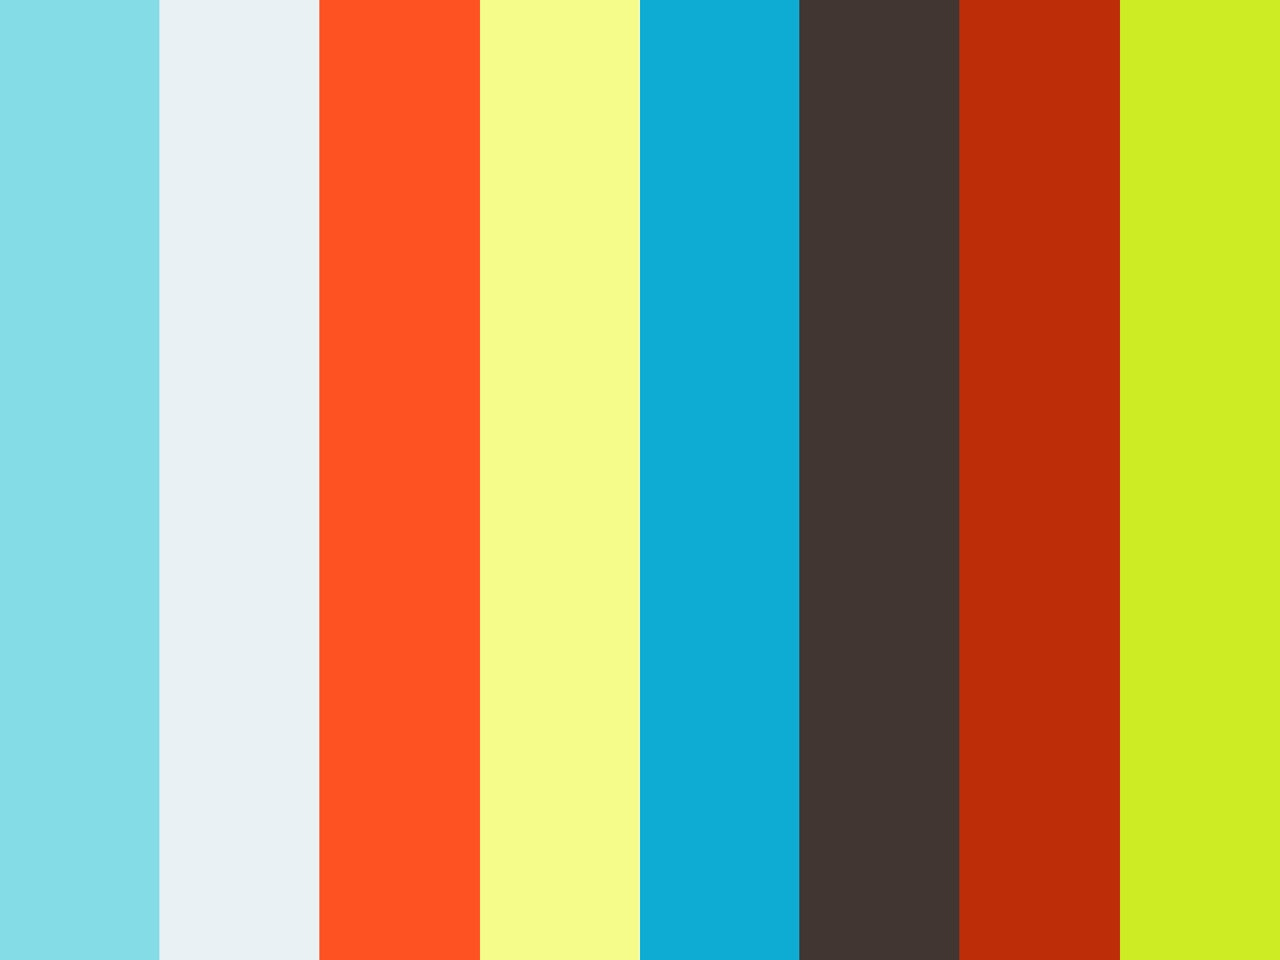 SHS Project Building Committee - December 21, 2015